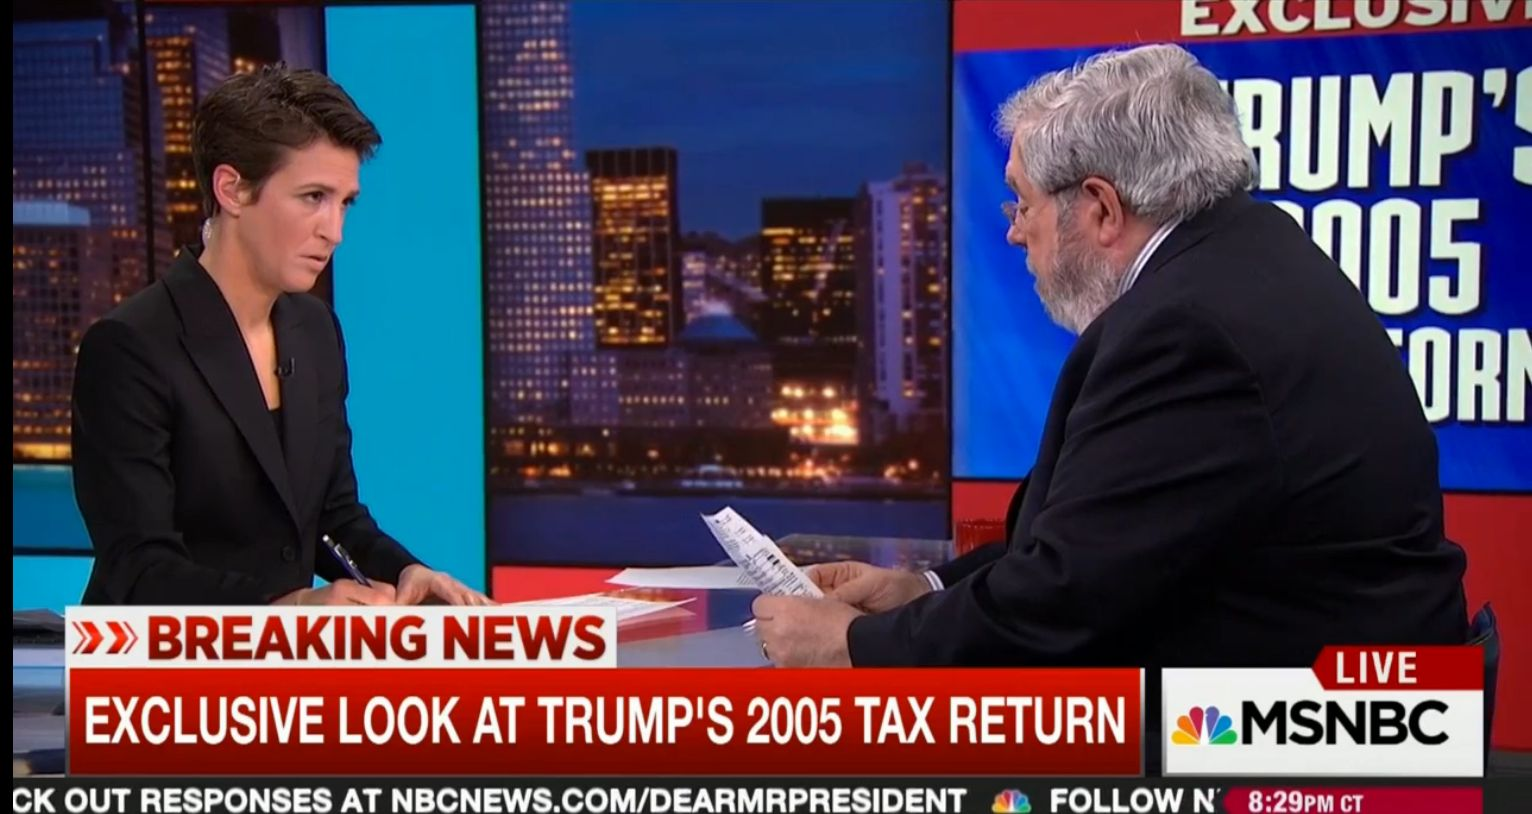 David Cay Johnston speculated that Trump could be the source of the tax return pages, since he has a history of leaking mater